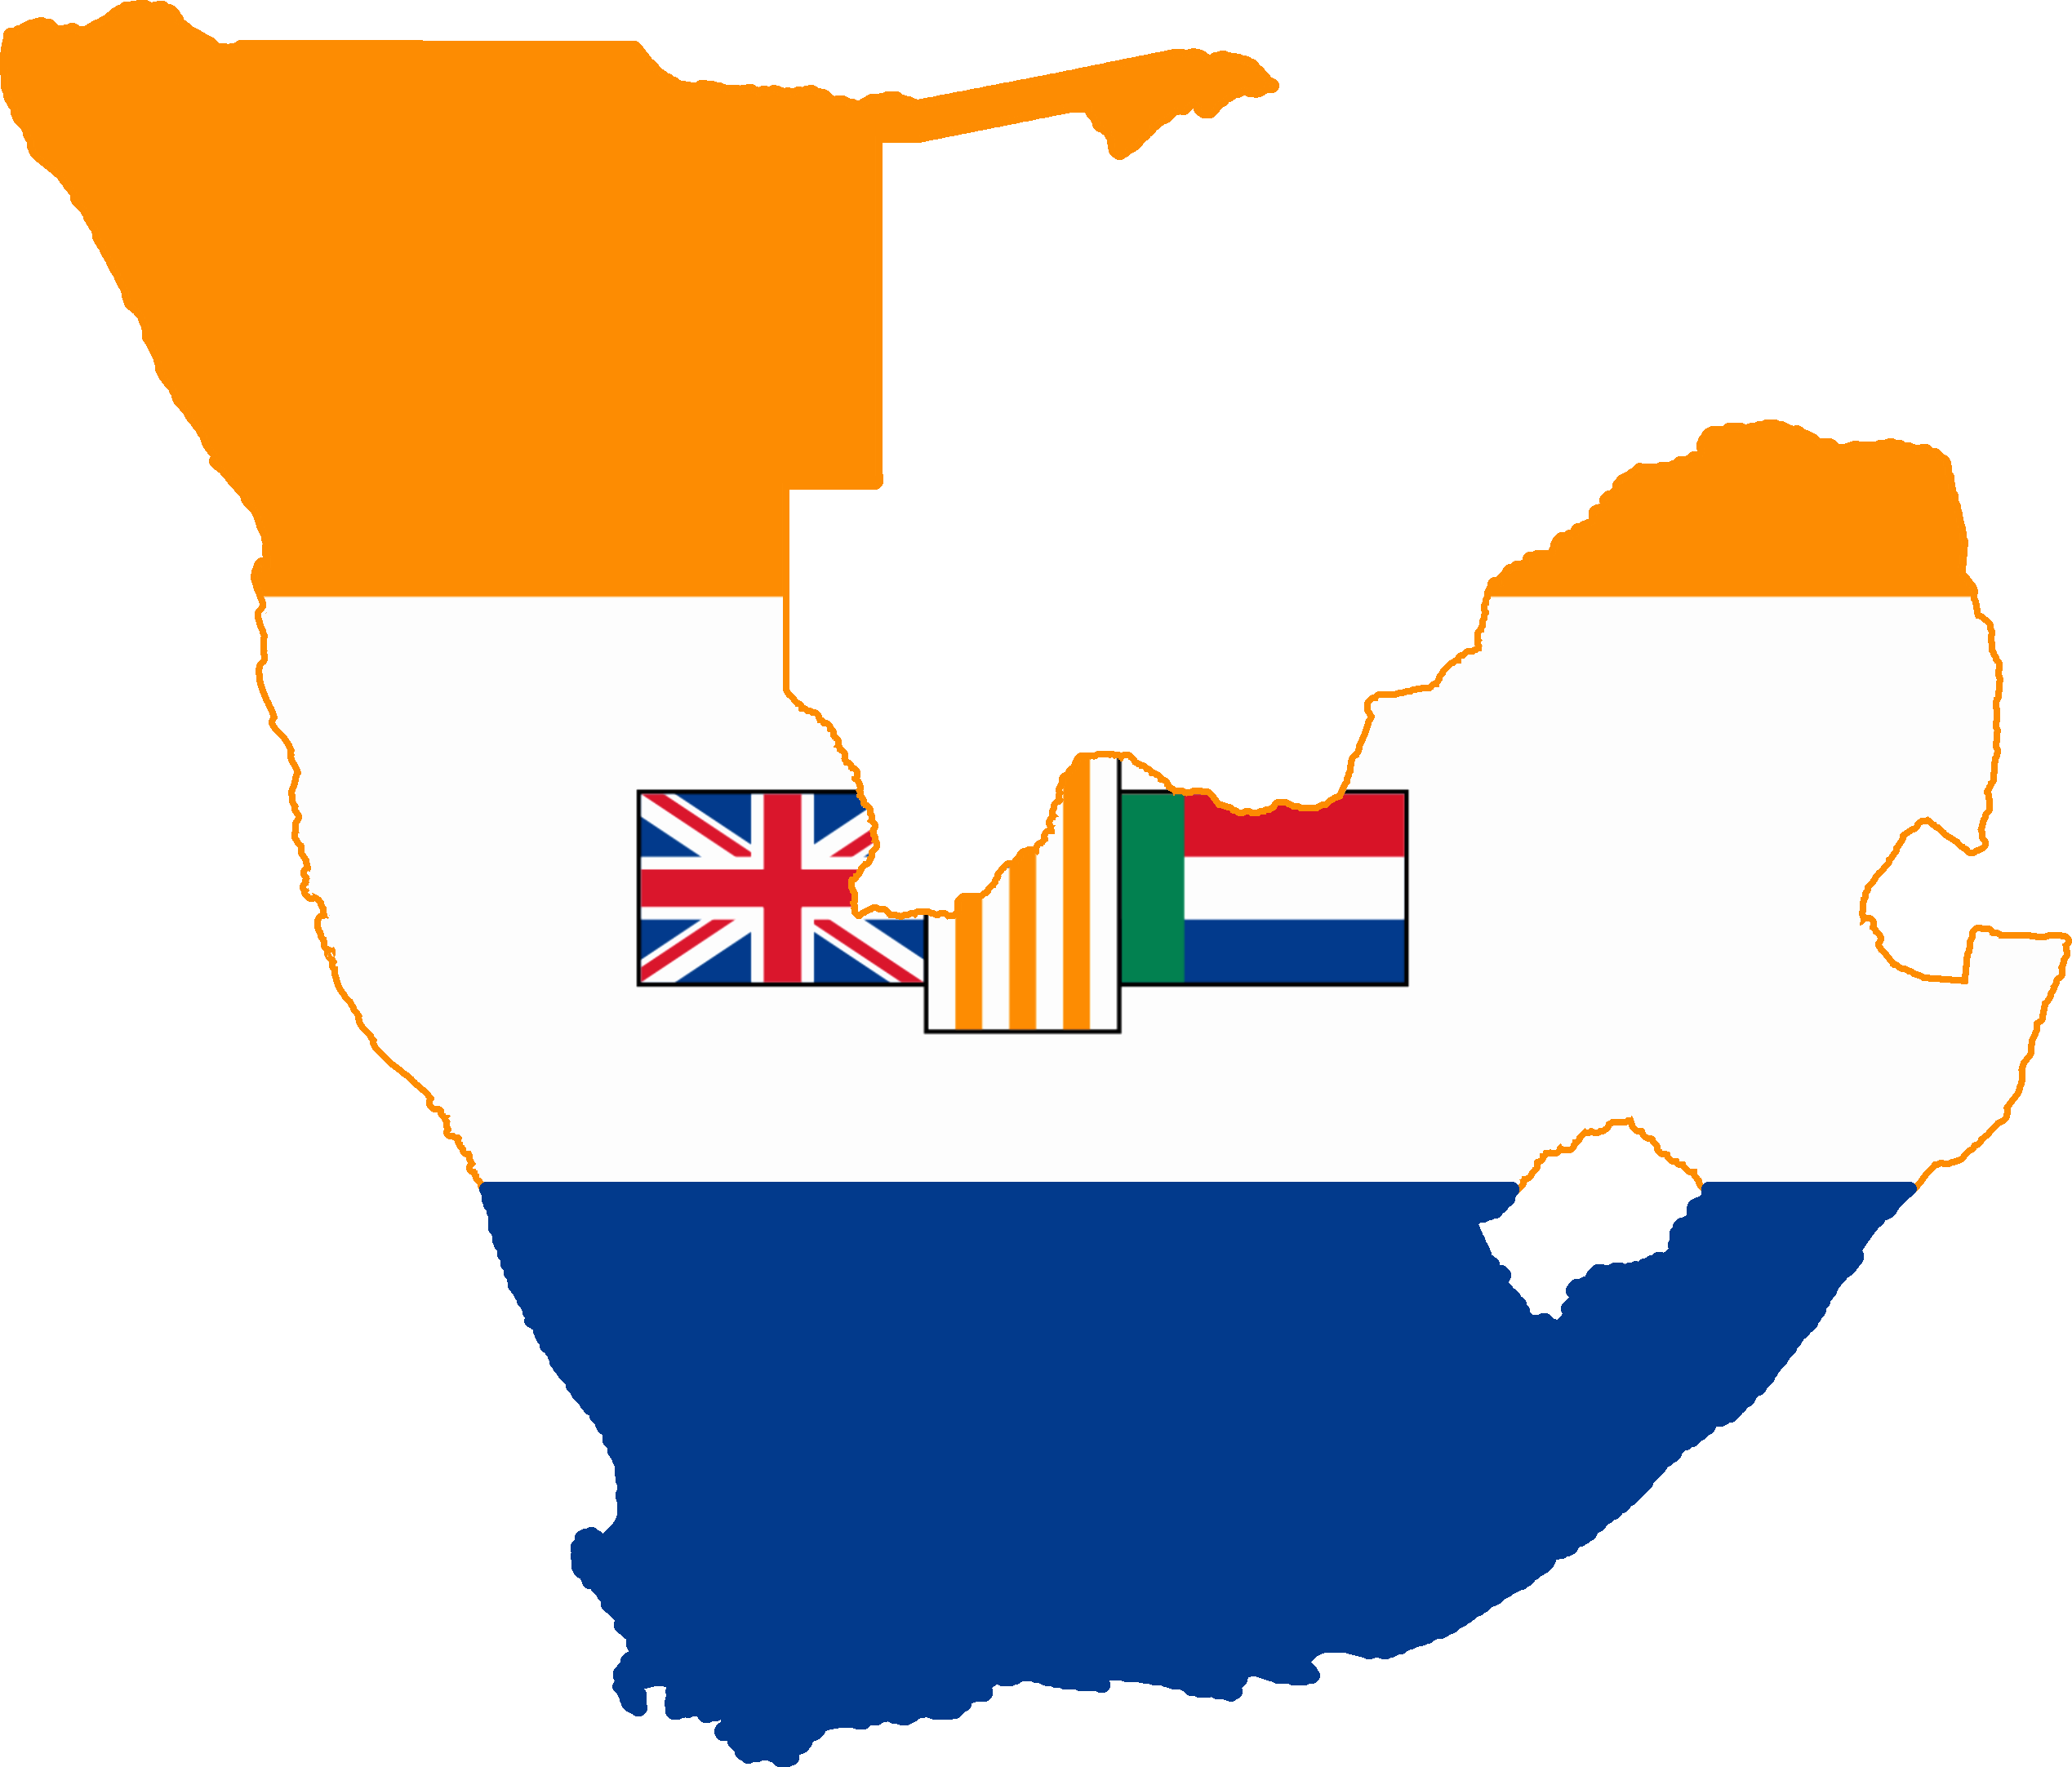 South africa png. File flag map west